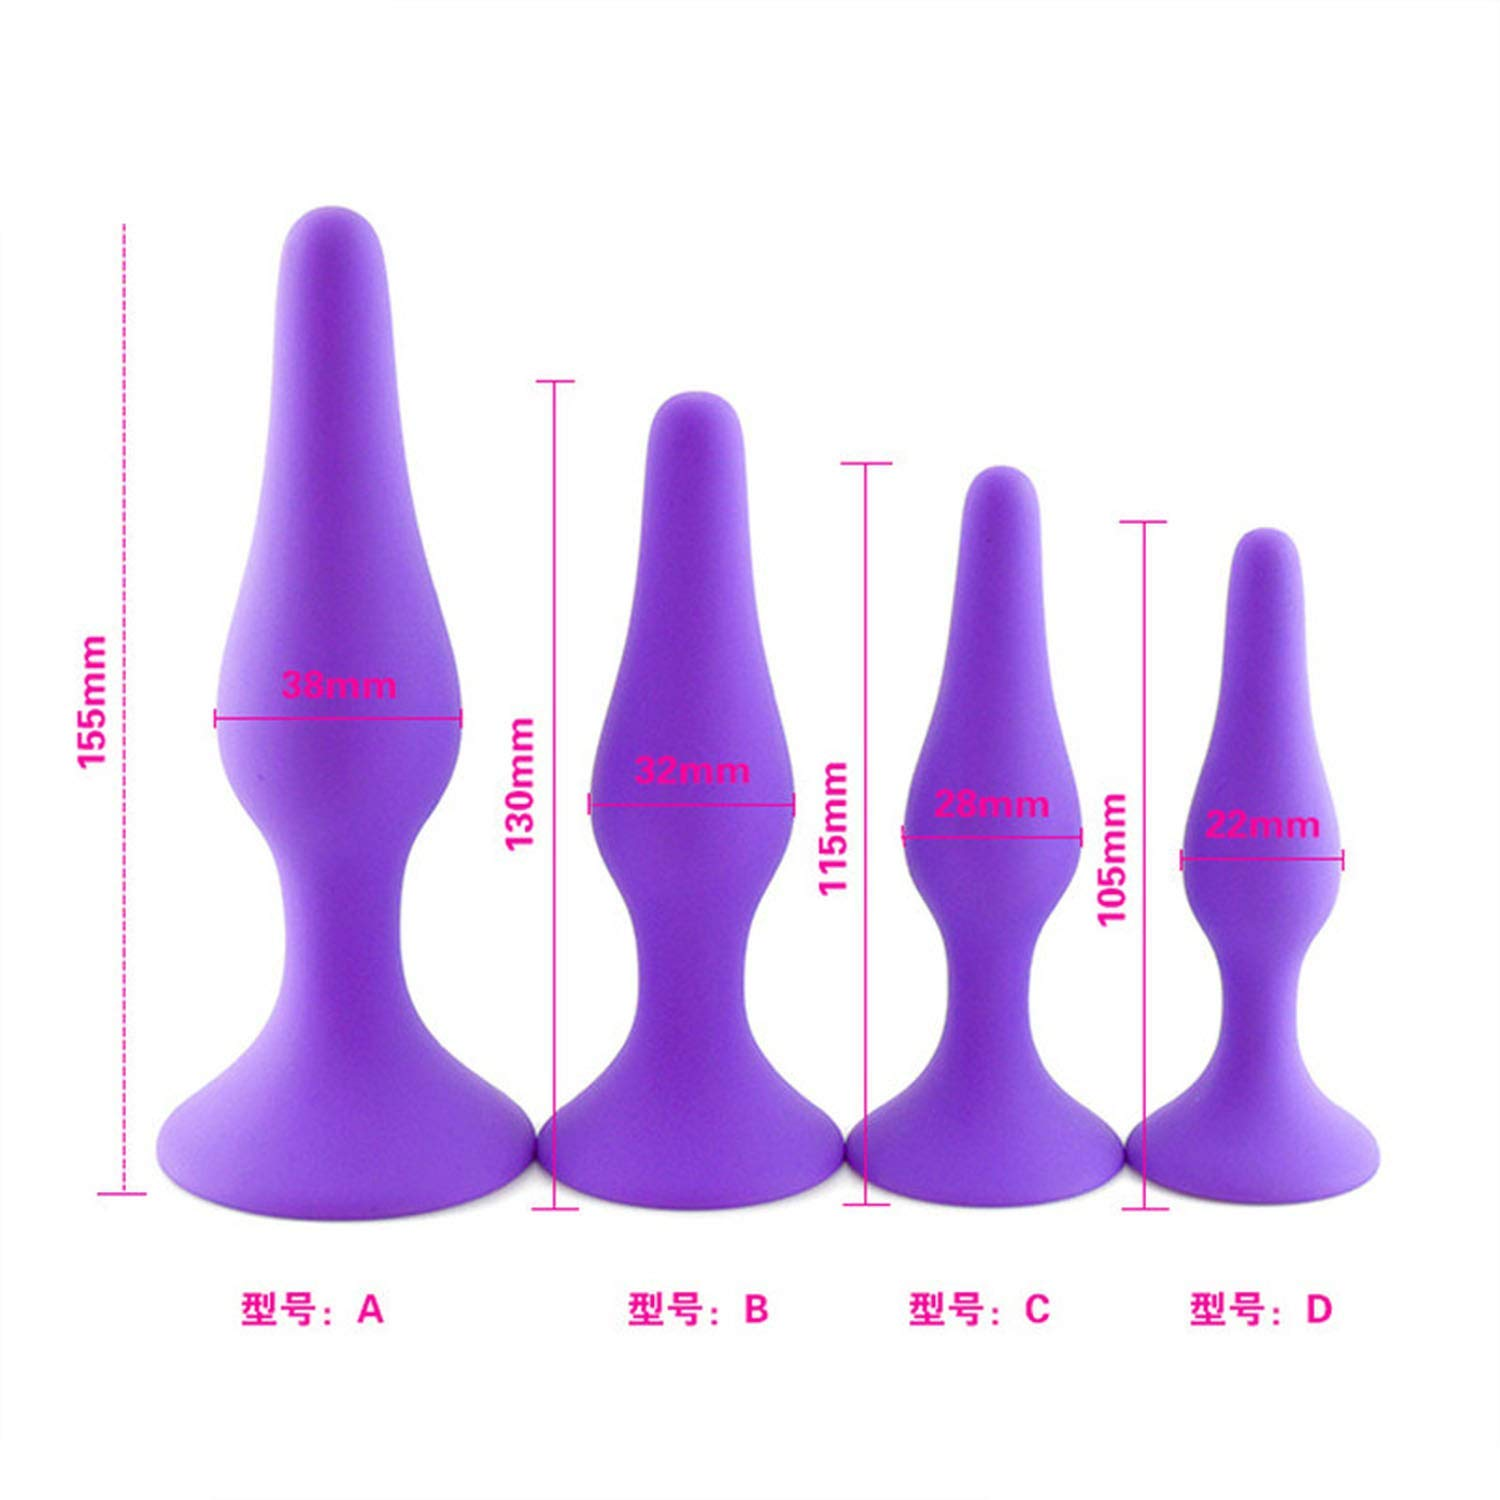 Dervn Bütt Tail Plug  Full Silicone Anál Plug 4 Pcs/Set Bütt Plug M-assage Sêxv-Toys Men Gày Ass Plug with Strong Sucker A^nu's Ex-pansion,Purple